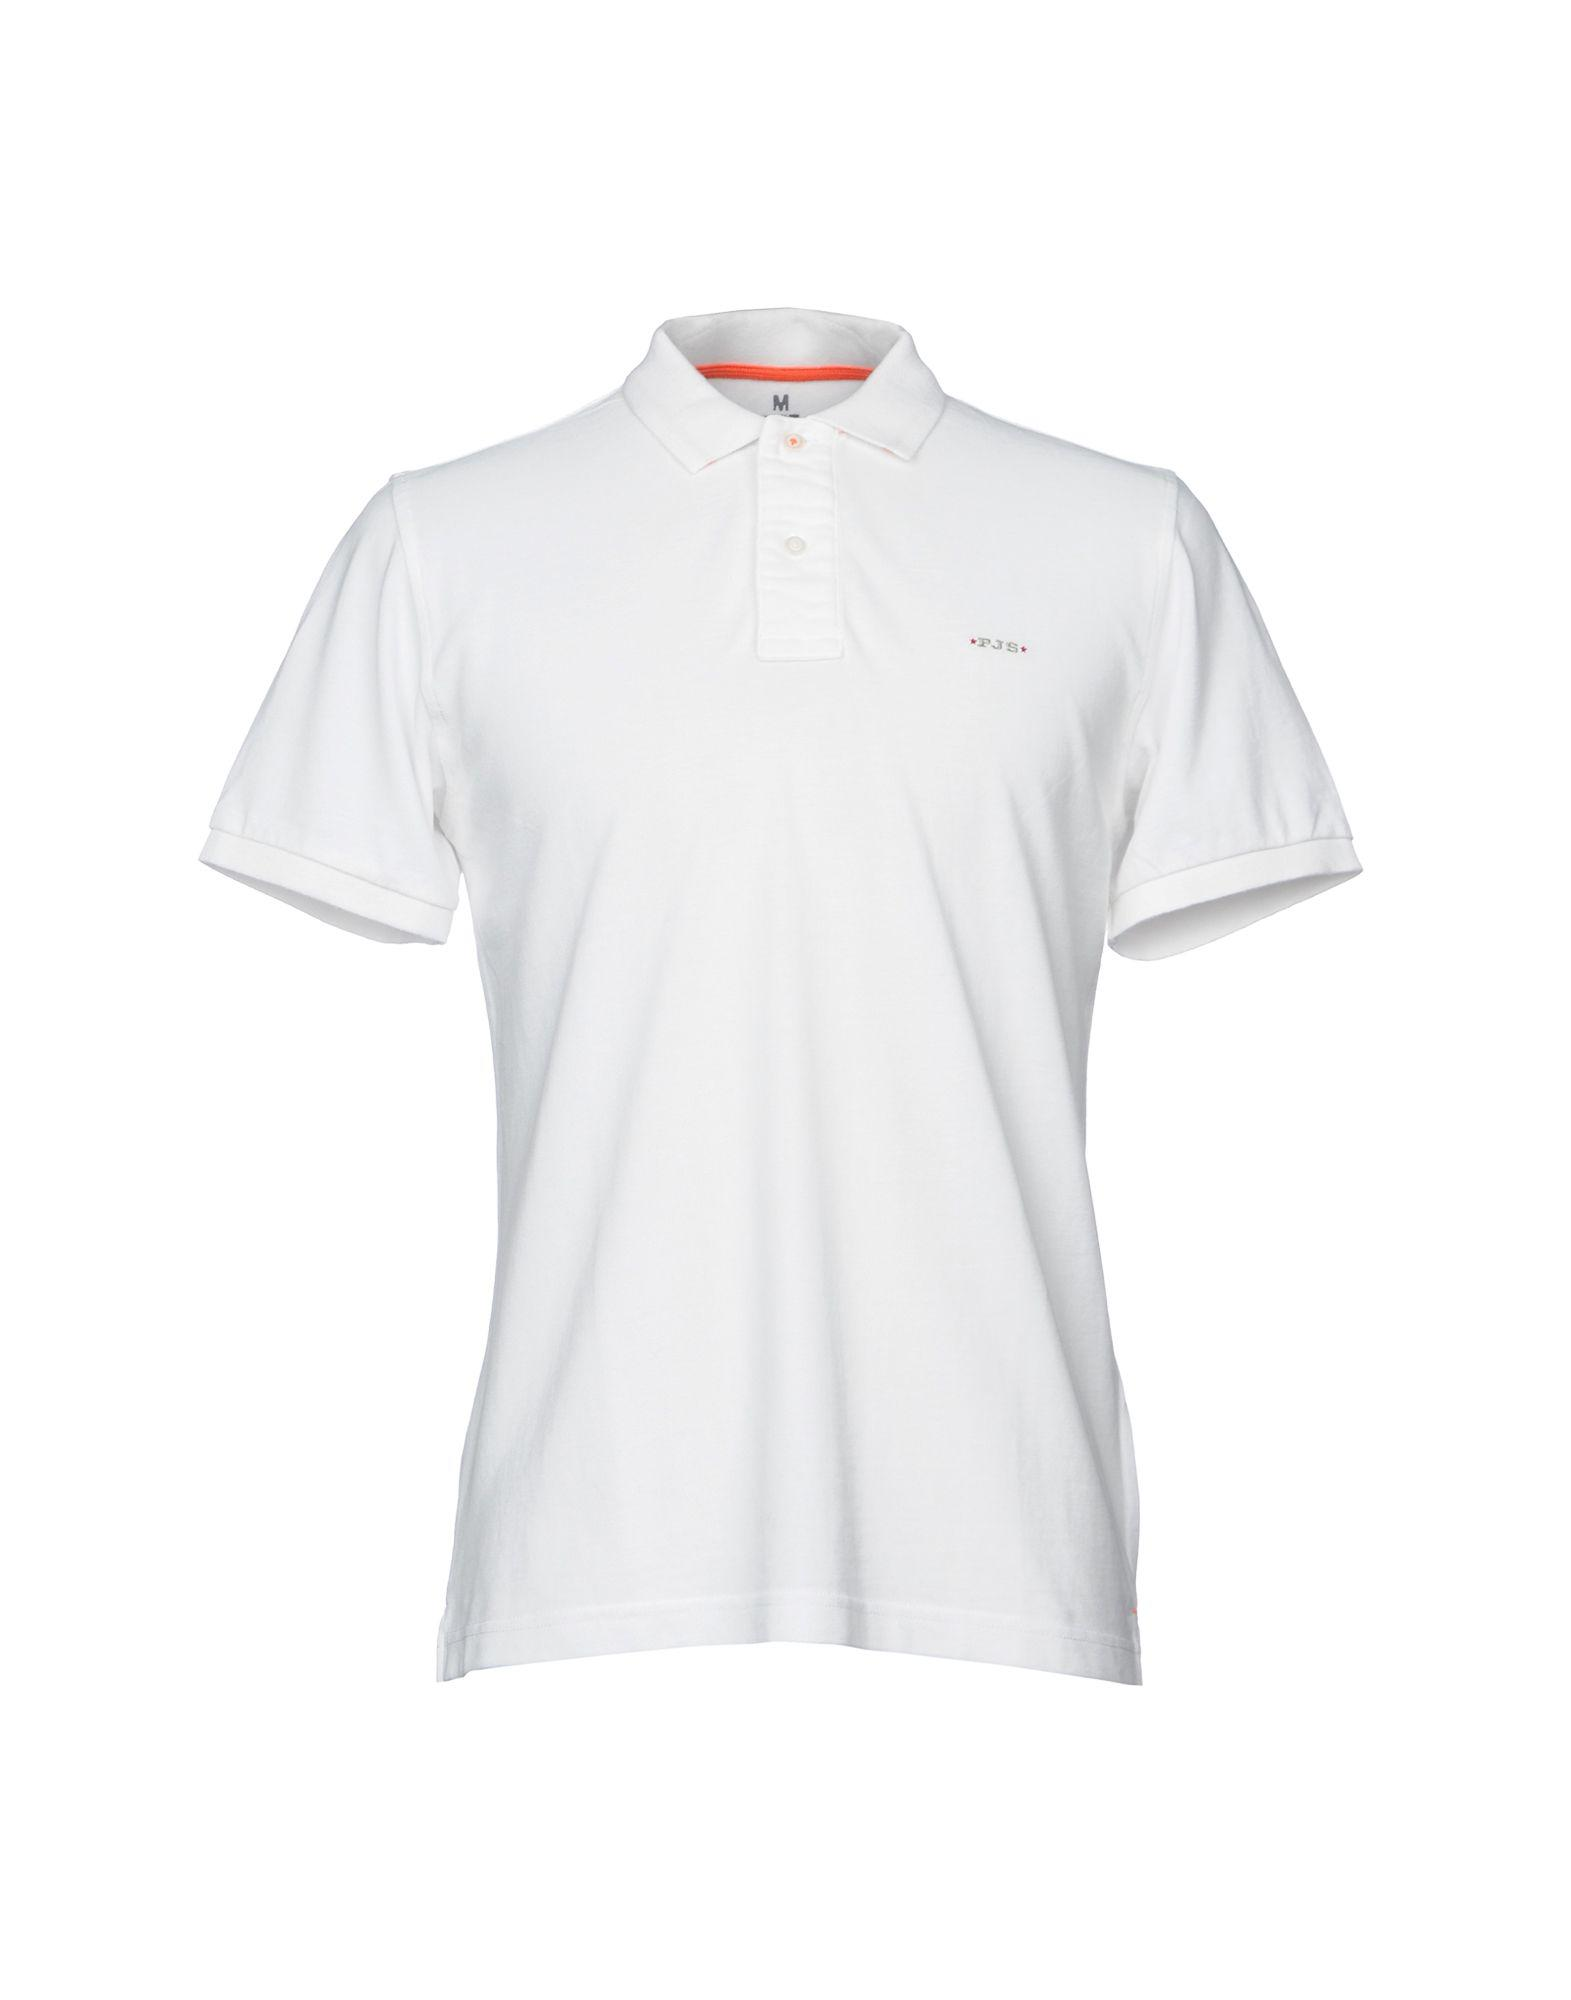 Parajumpers. Men's White Polo Shirt